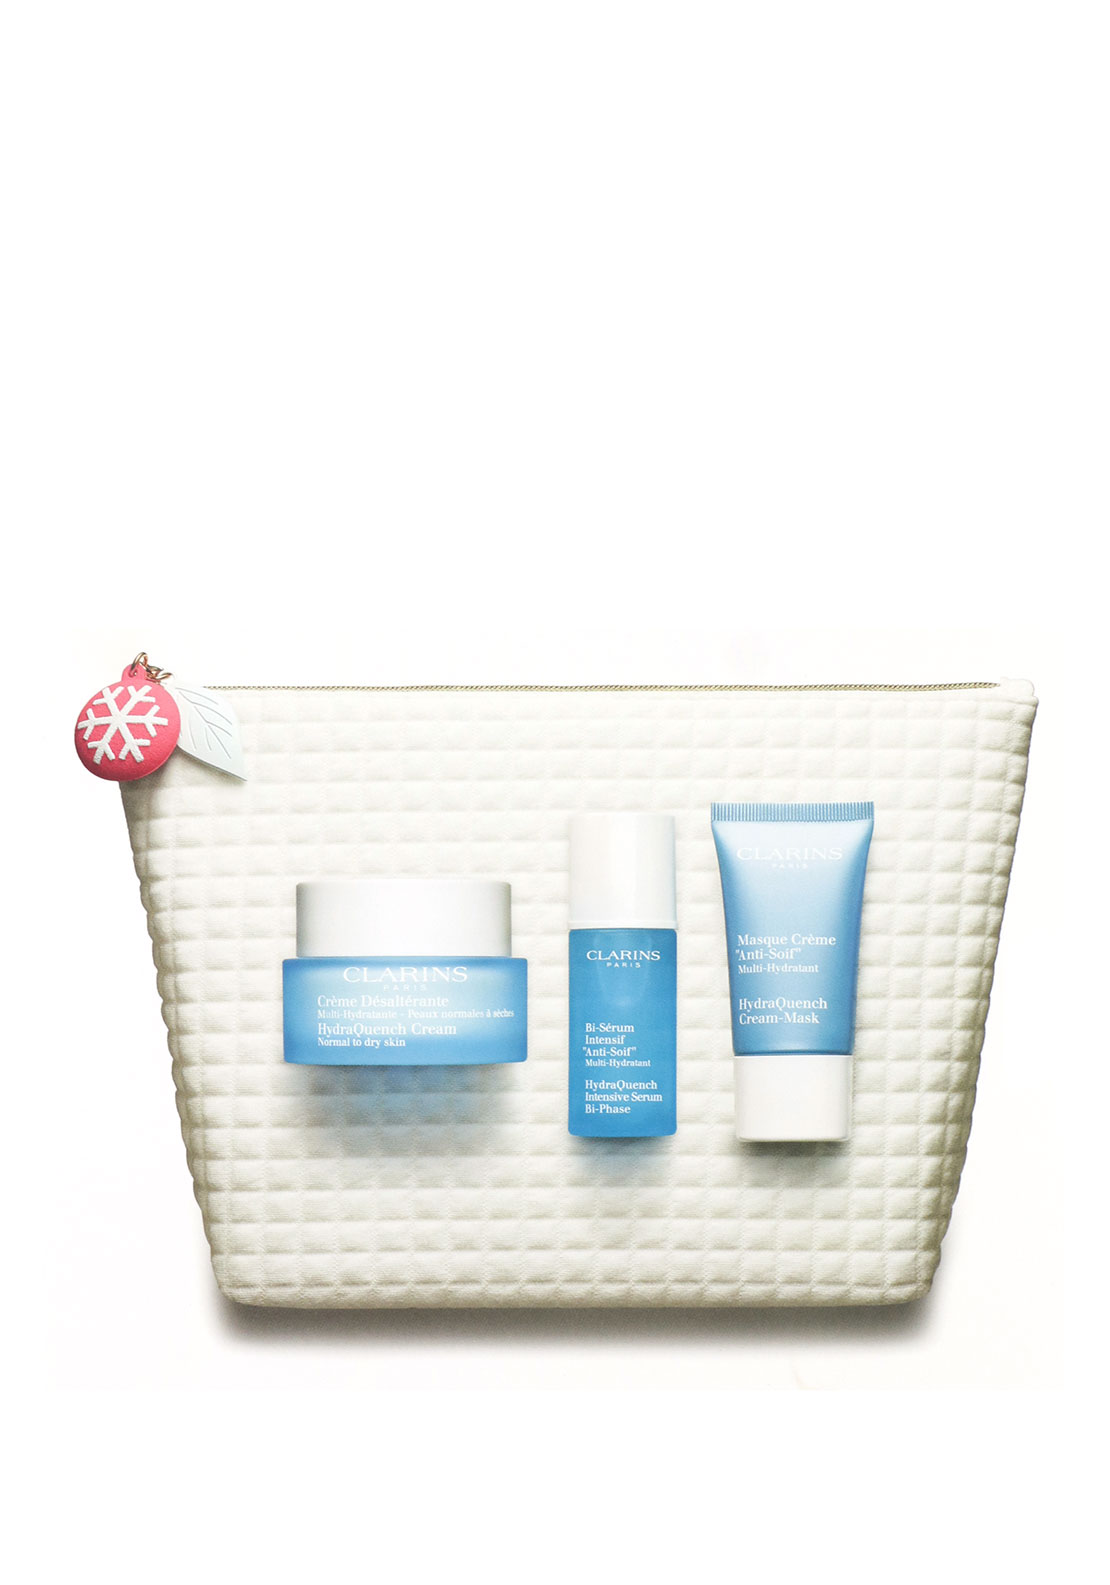 Clarins Christmas Experts Hydration Essentials Gift Set